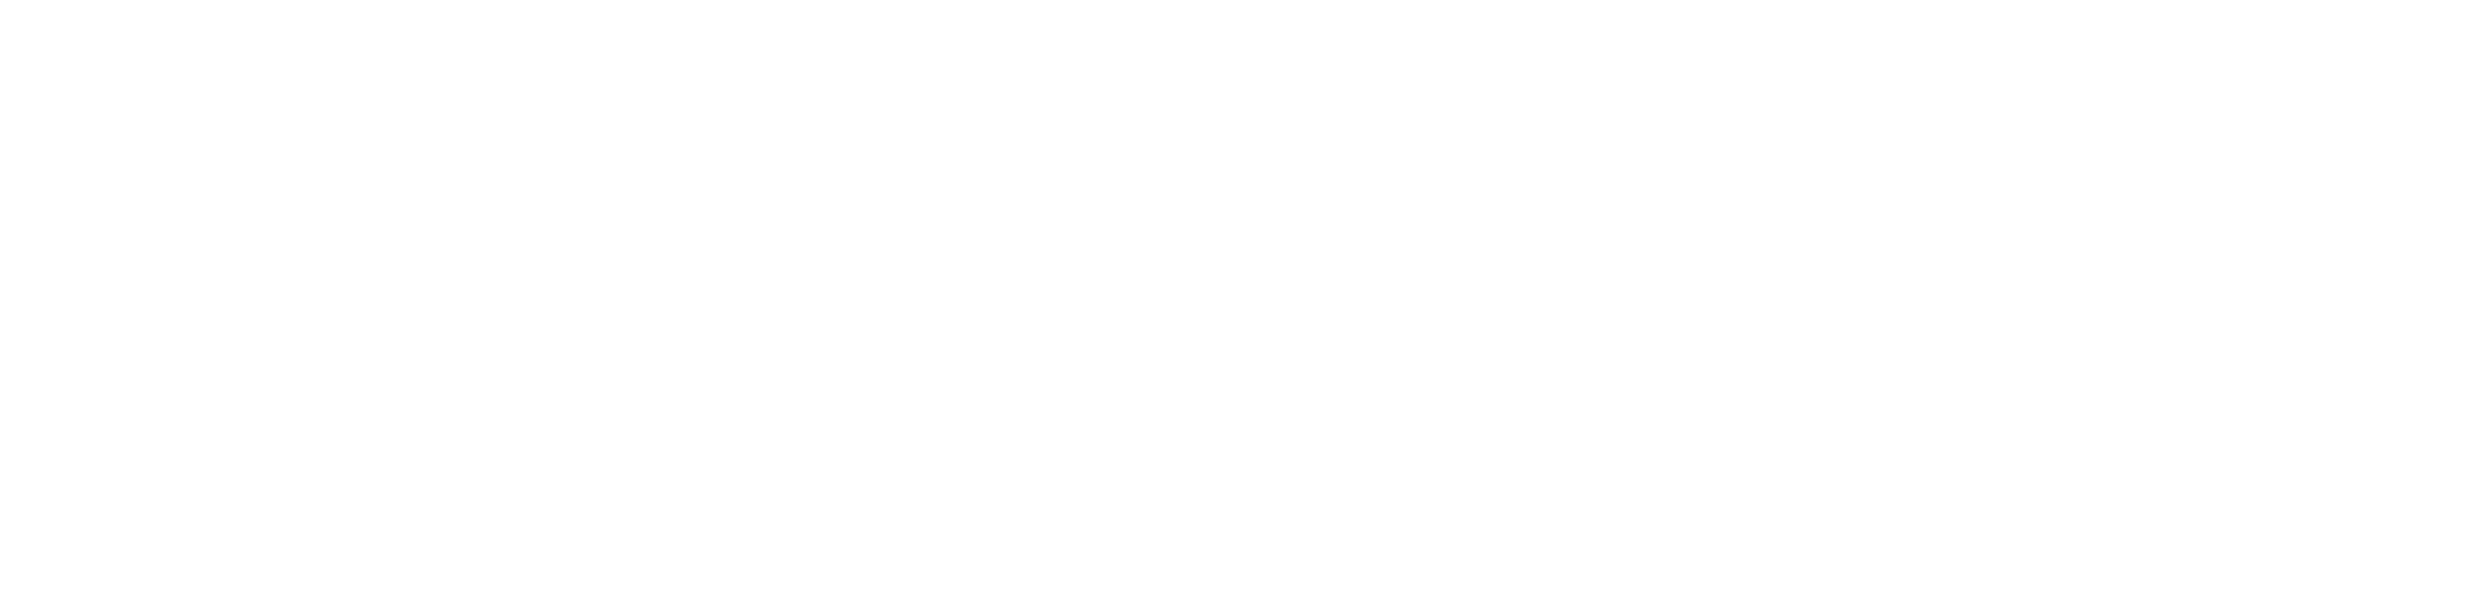 Nash County North Carolina Footer Logo